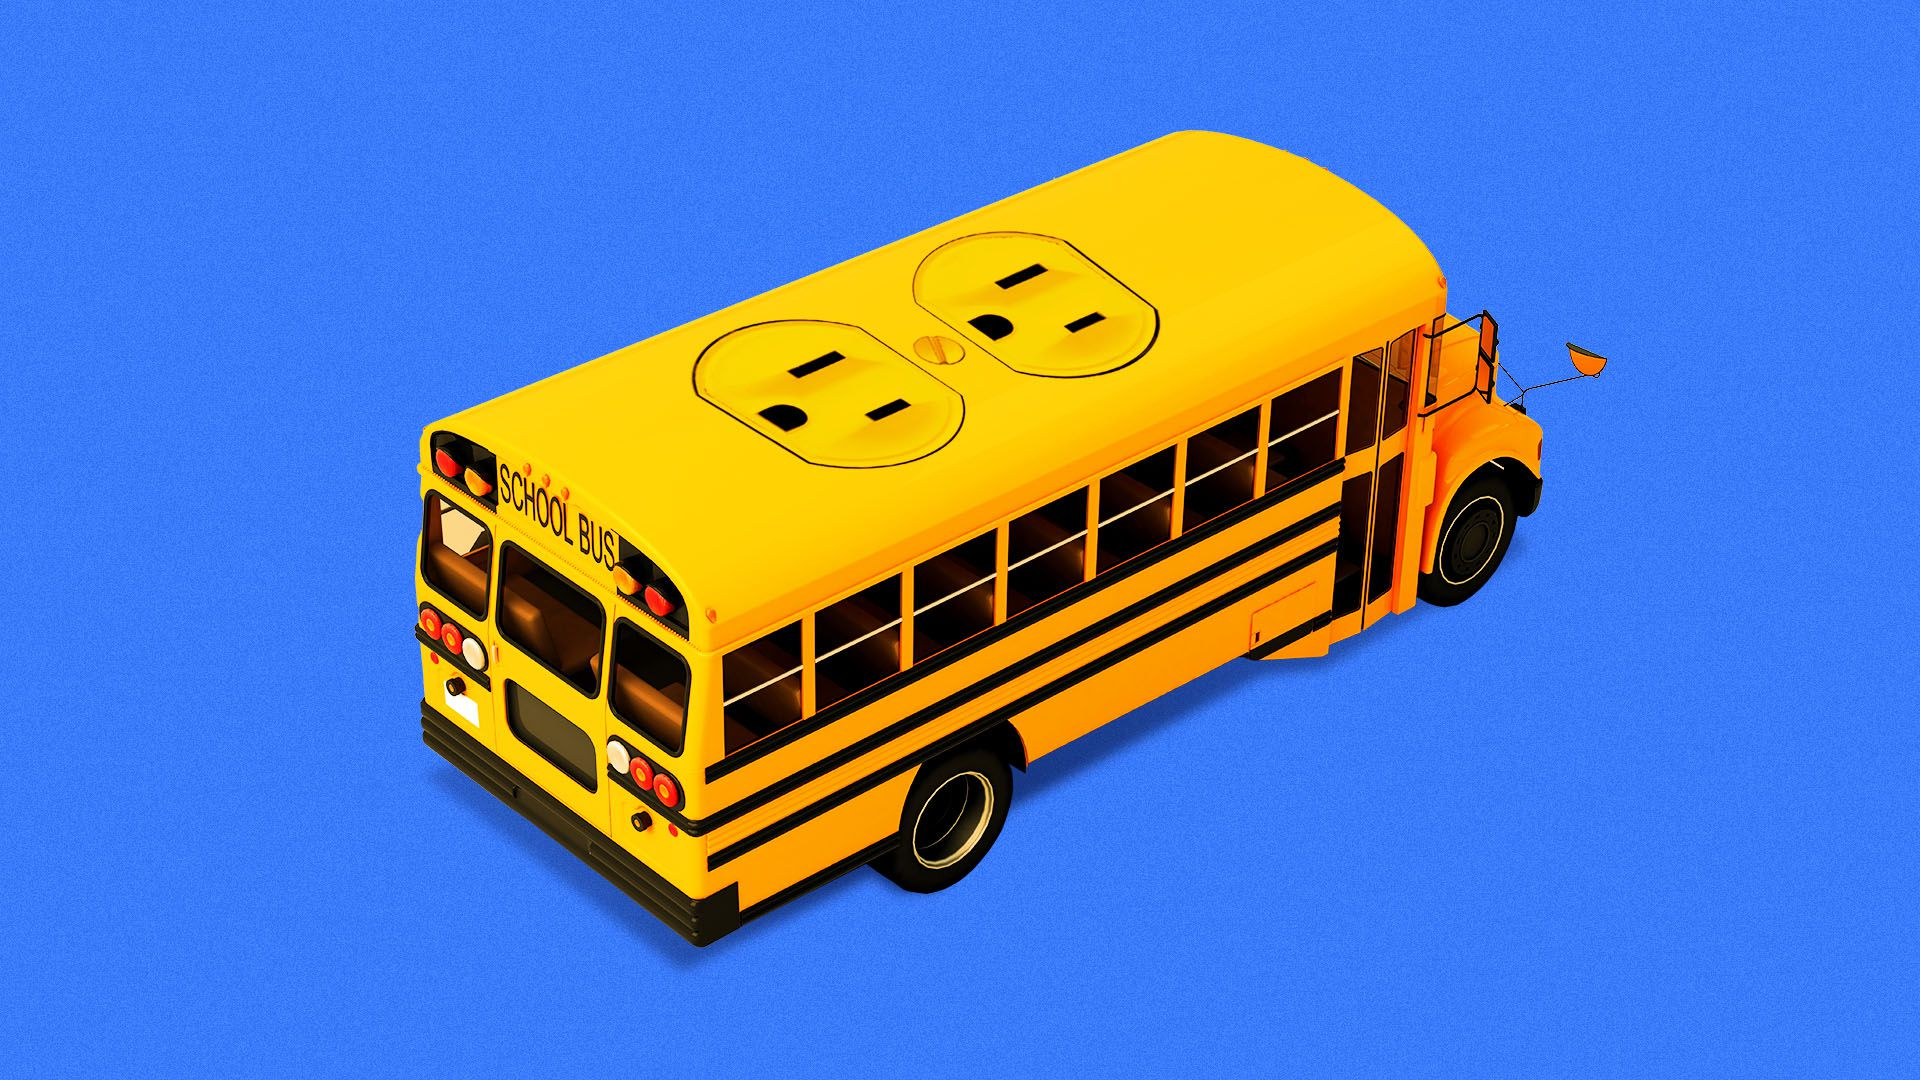 Fleets of electric school buses are being tested to store power for the grid